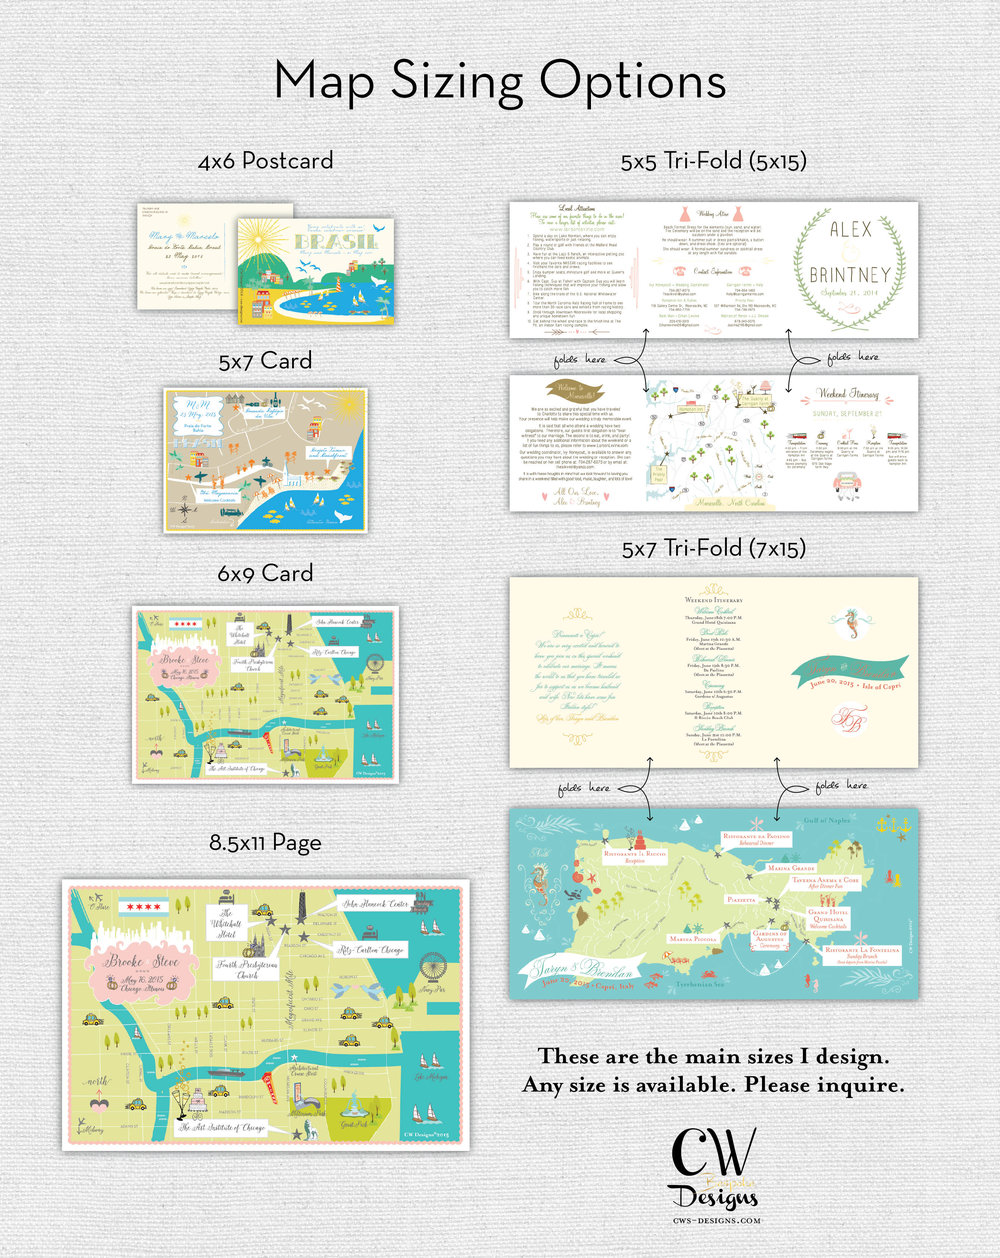 Wedding Map Sizing Options